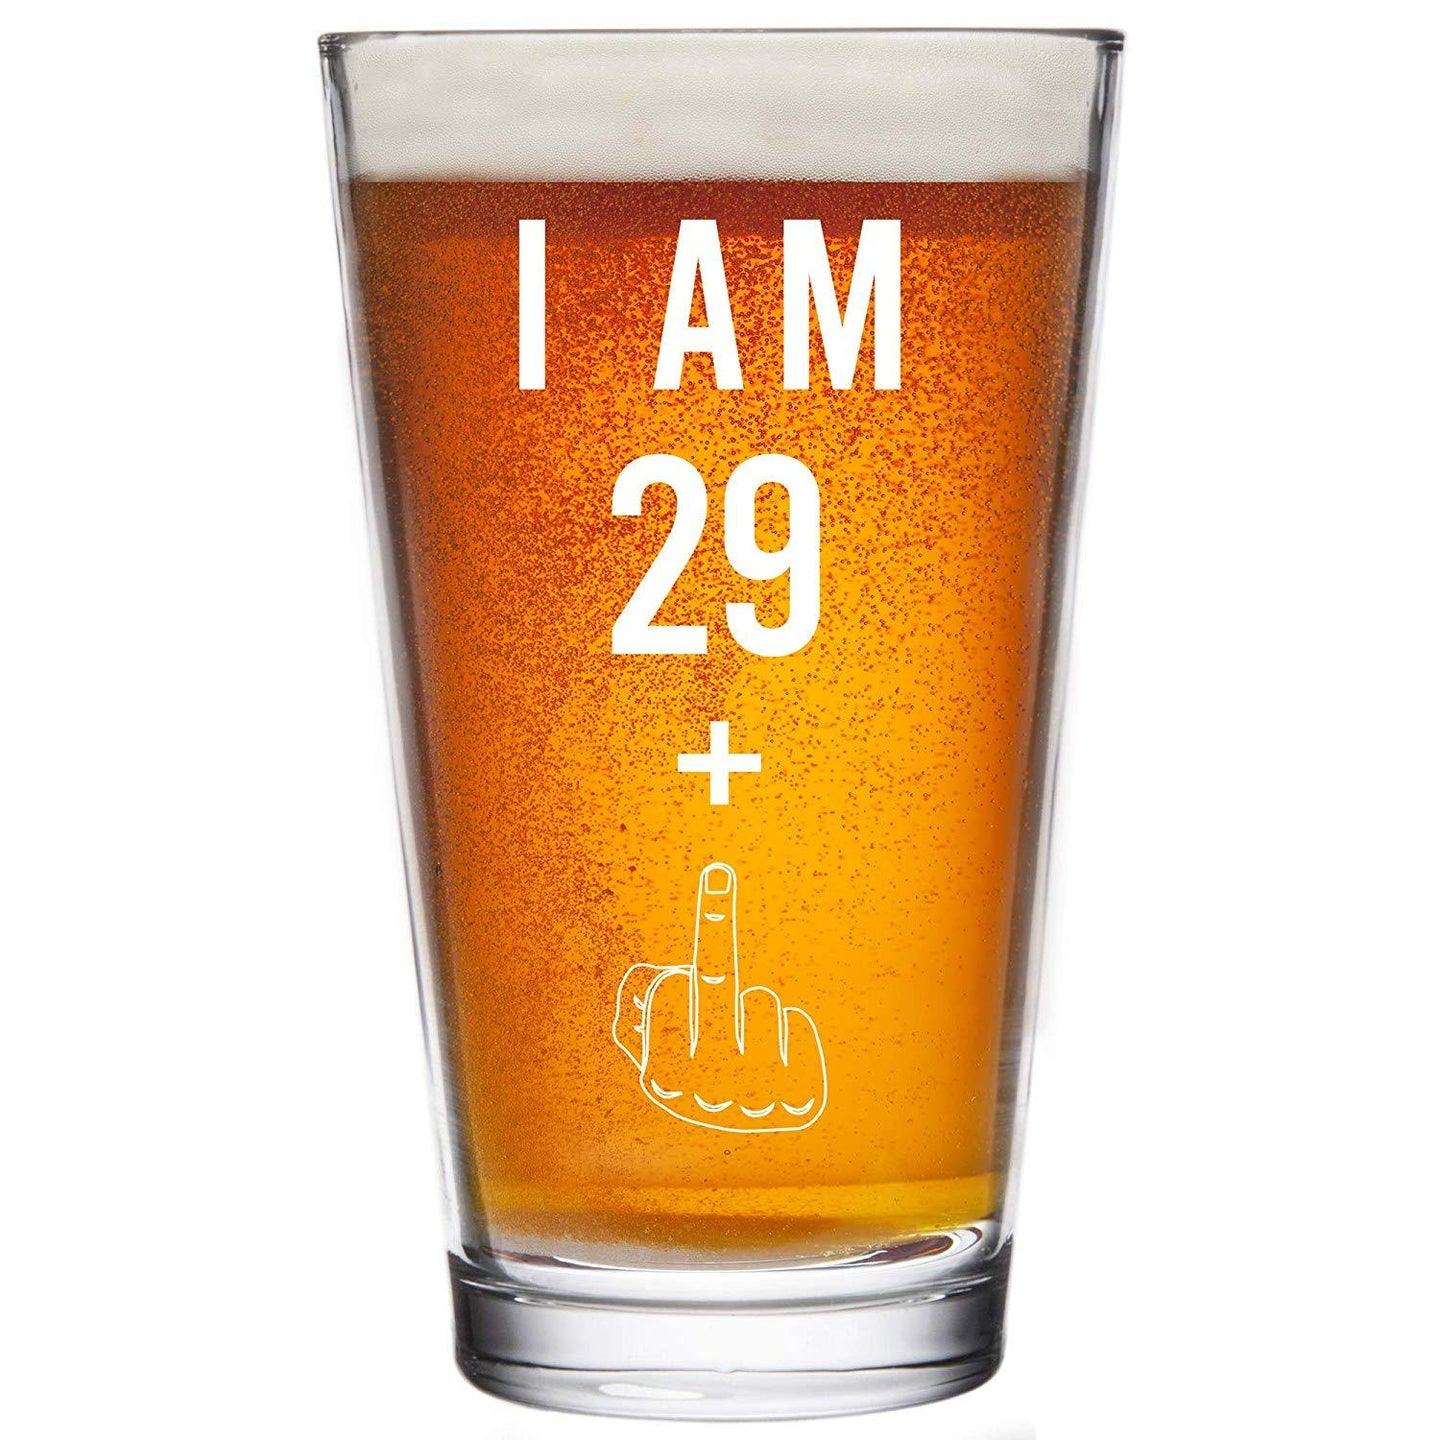 29 + One Middle Finger 30th Birthday Gifts for Men Women Beer Glass – Funny 30 Year Old Presents - 16 oz Pint Glasses Party Decorations Supplies - Craft Beers Gift Ideas for Dad Mom Husband Wife 30 th